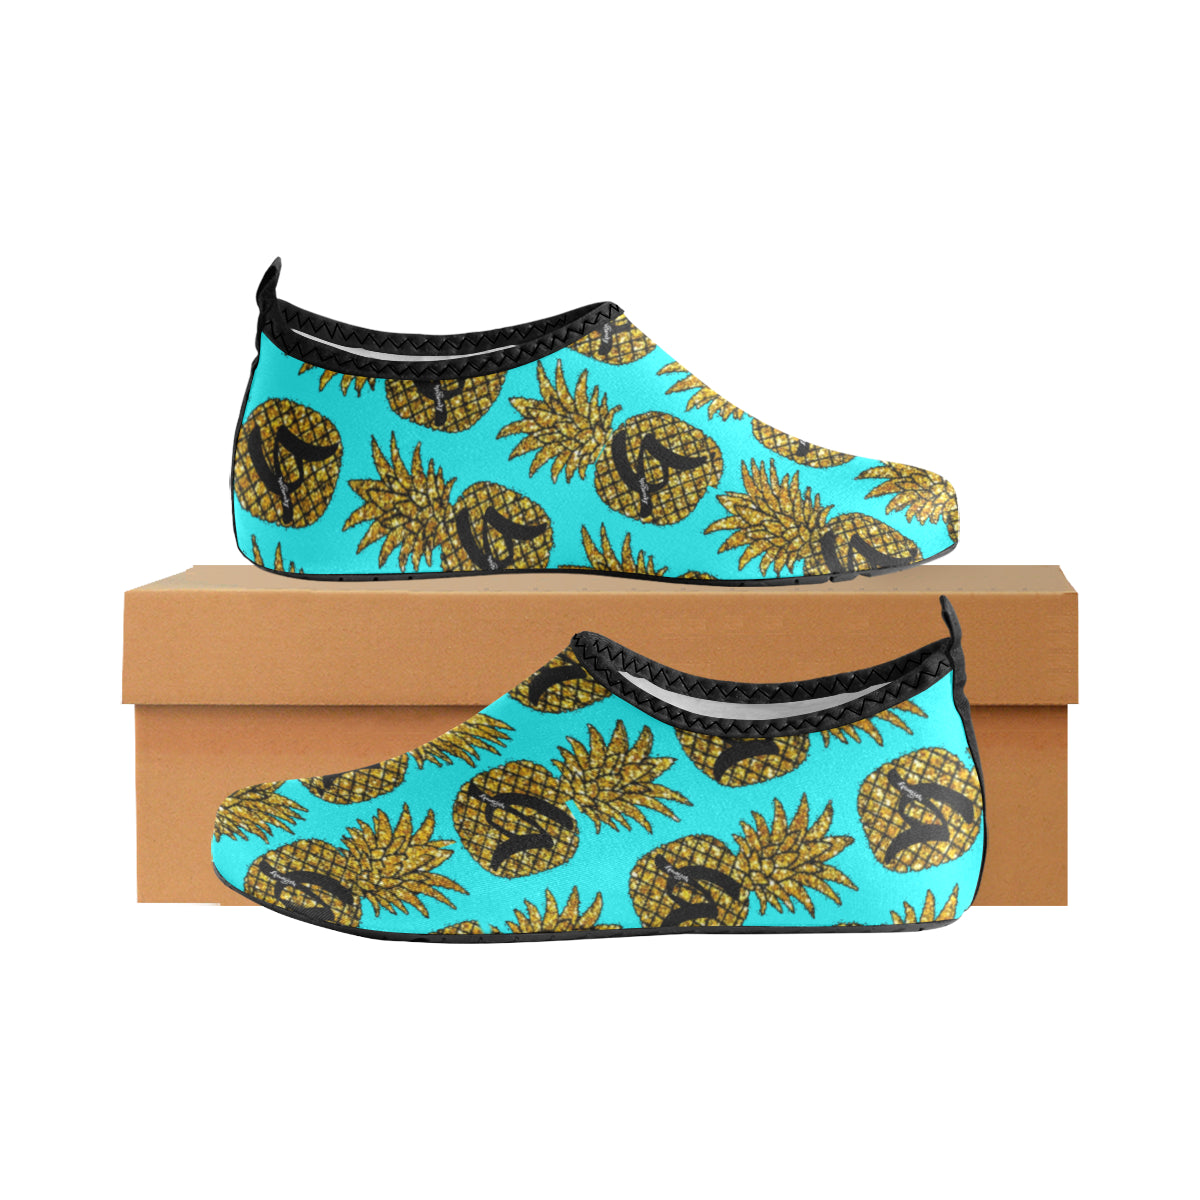 WddR Hydro1 Pineapple Slip-On Shoes